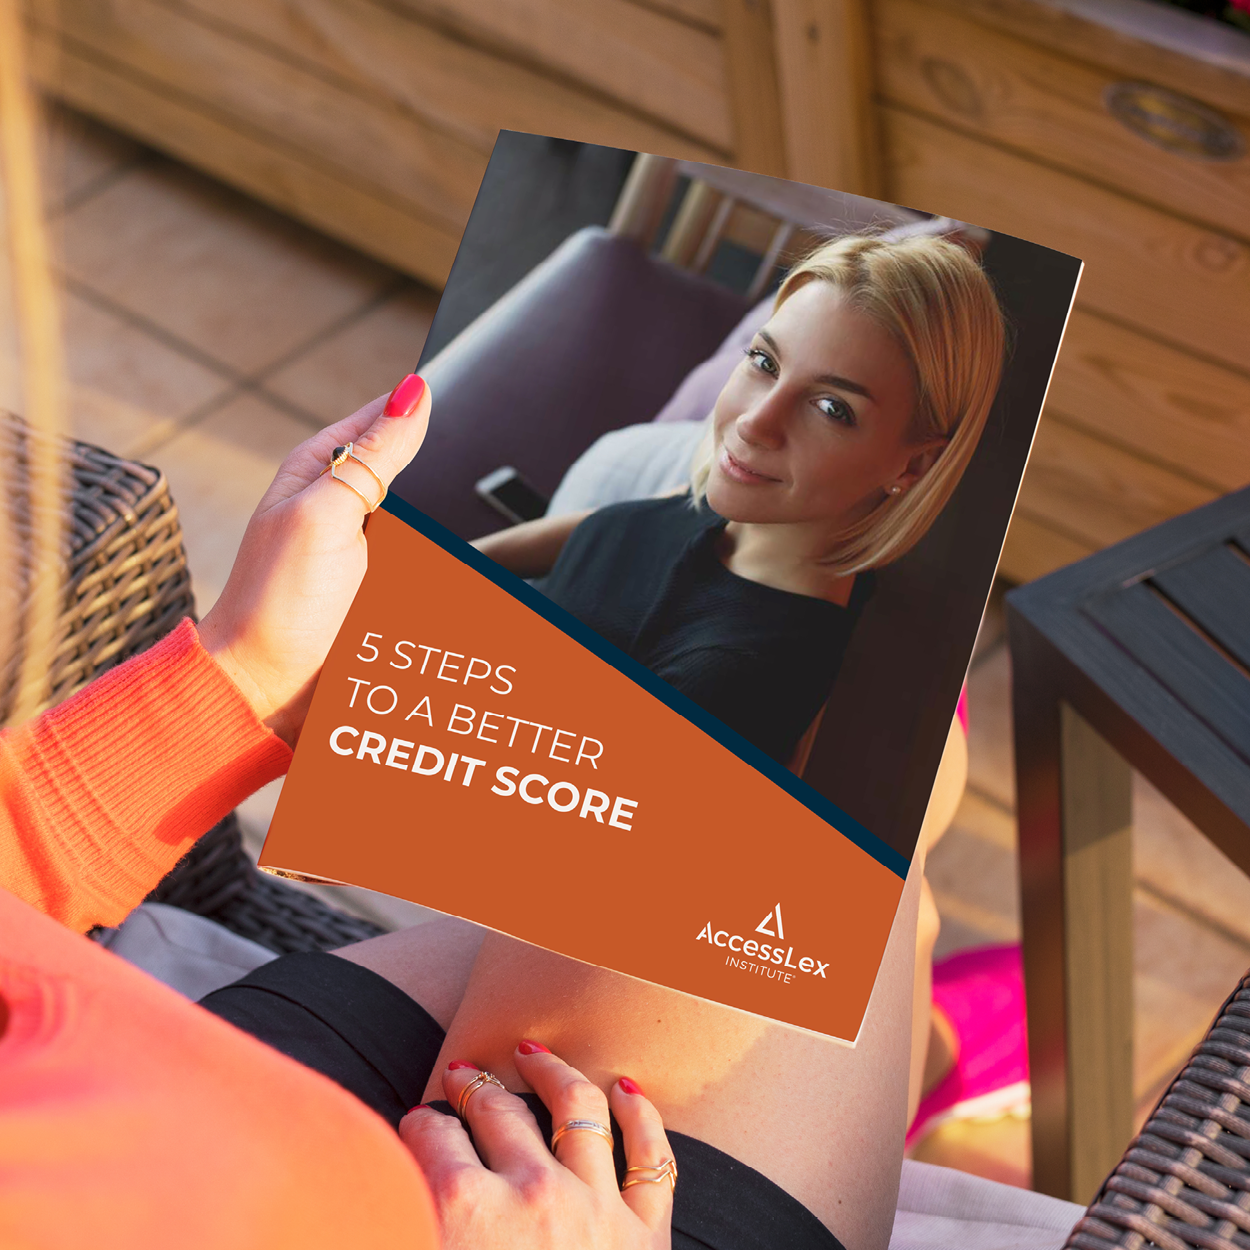 5 Steps to a Better Credit Score